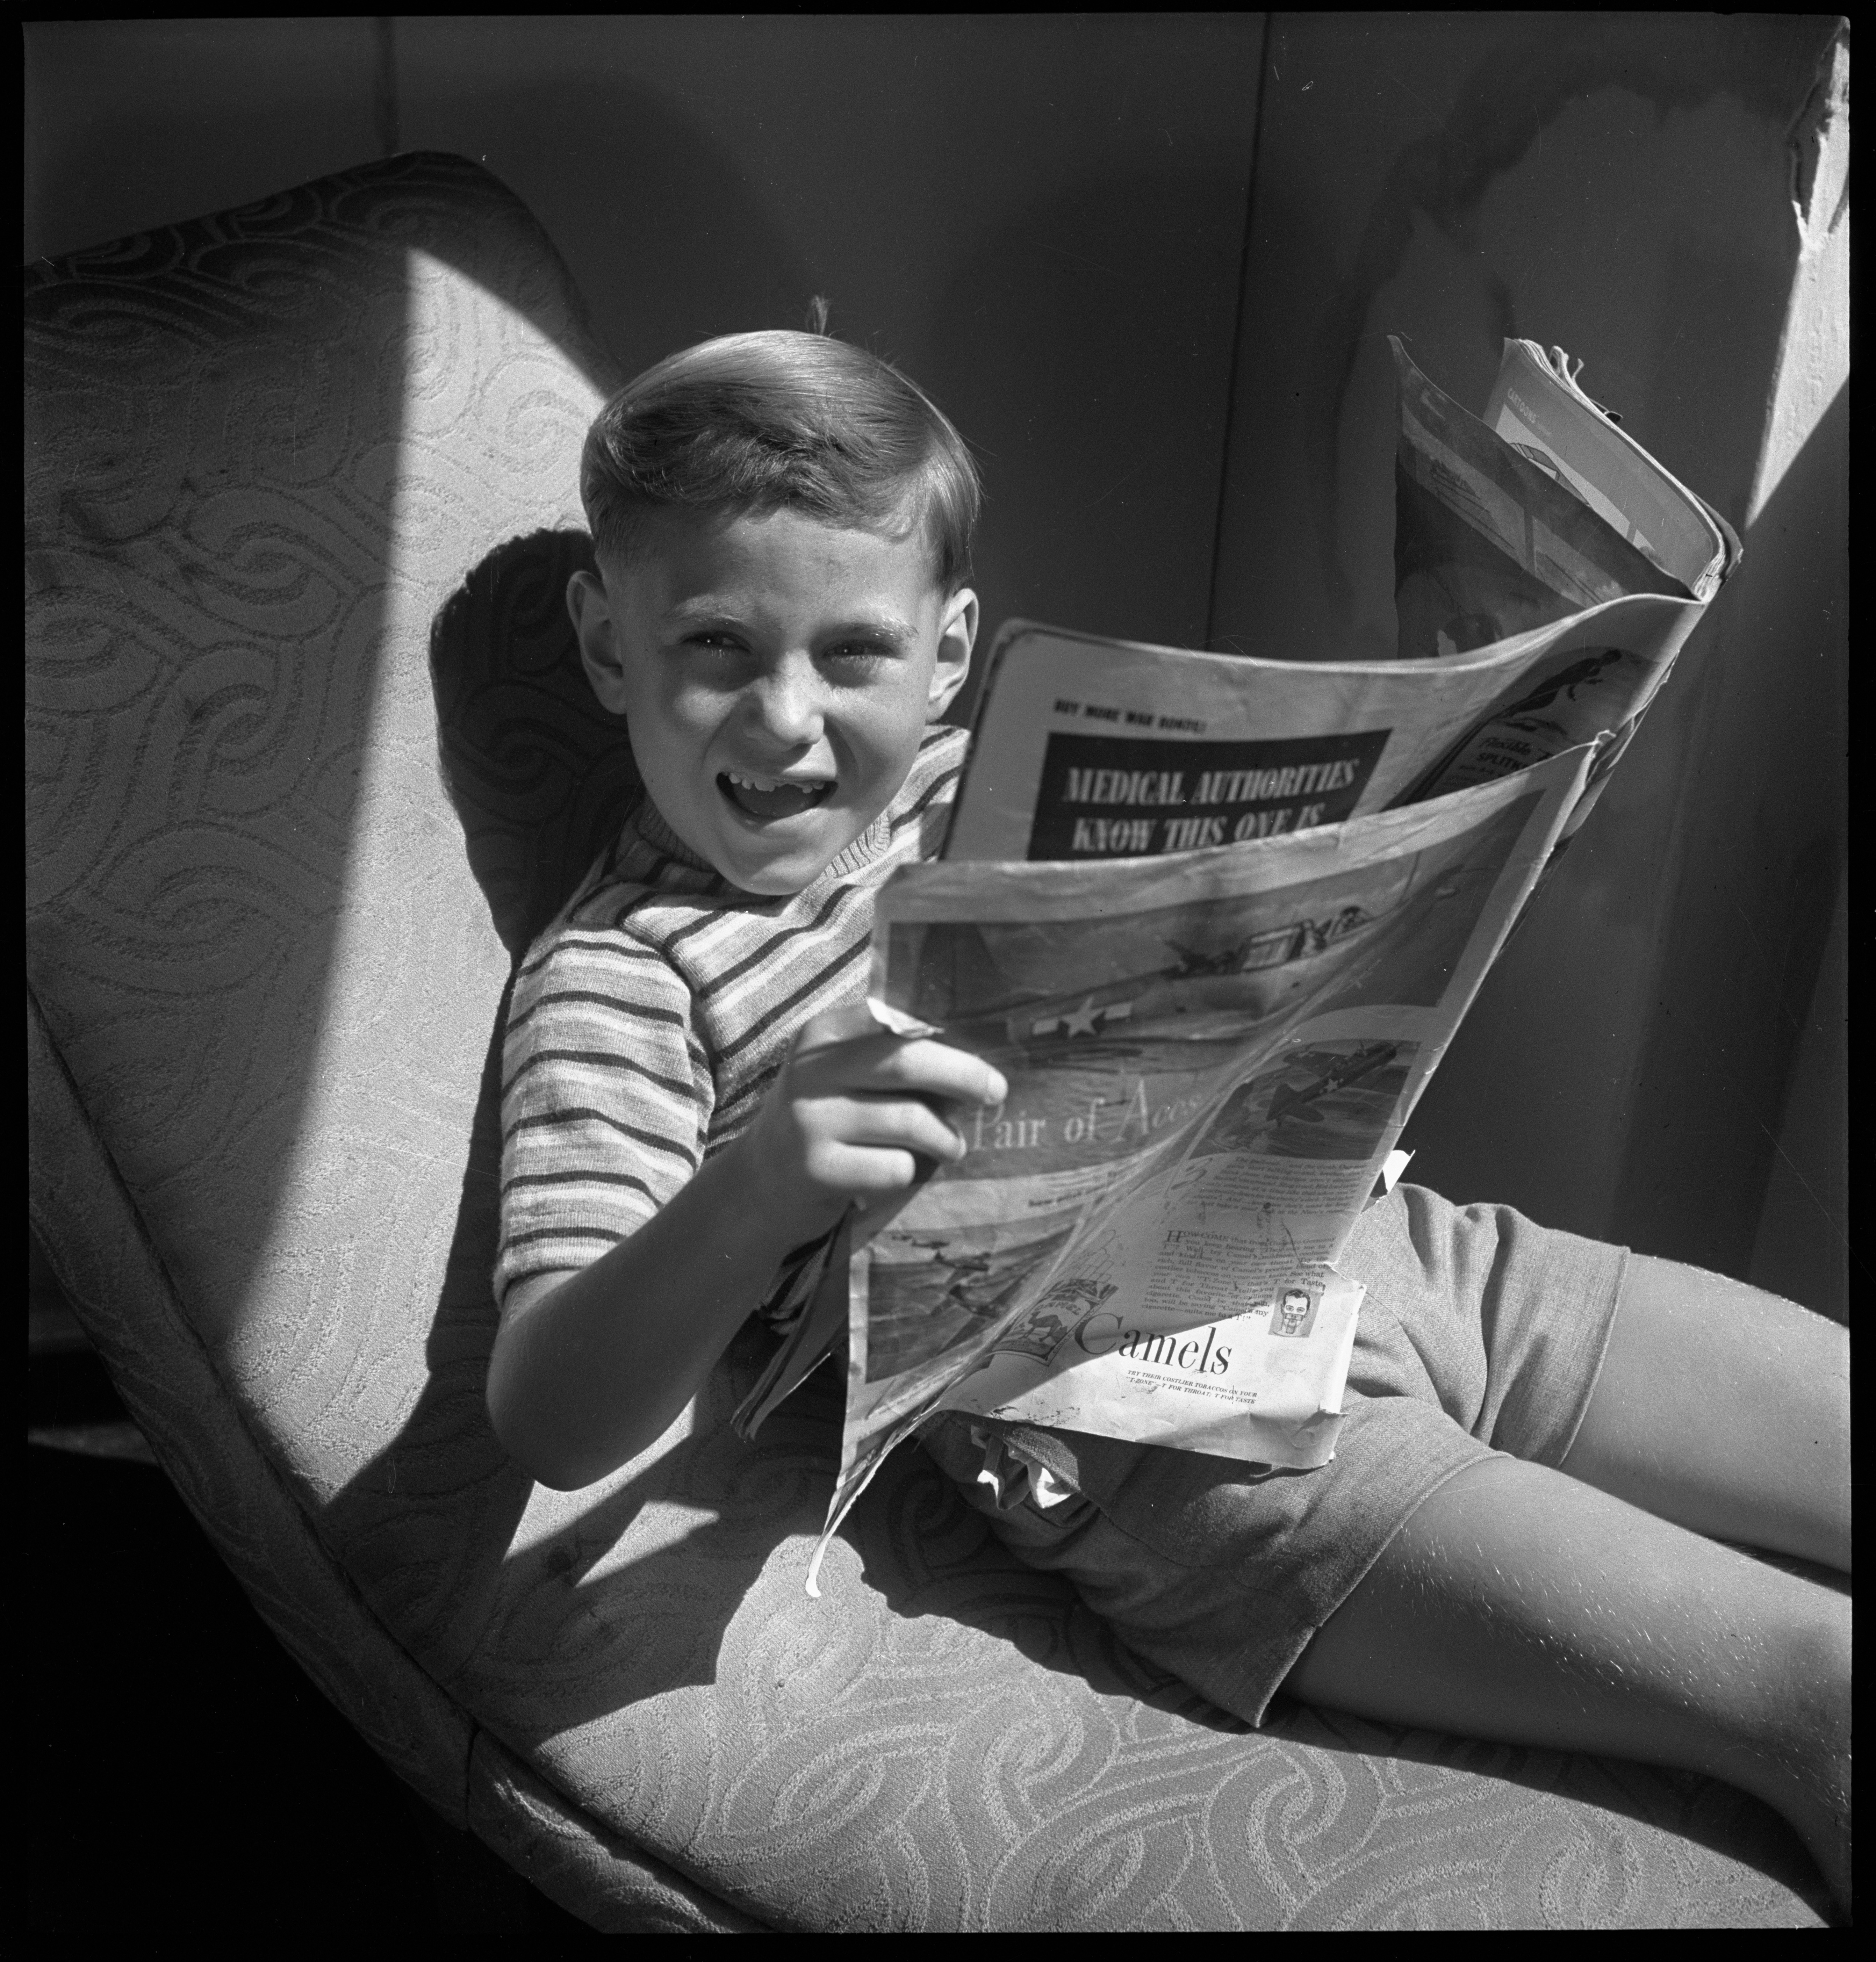 Jimmy Lee, model, 6 years old, reading newspaper, January 1946 / photographed by Max Dupain